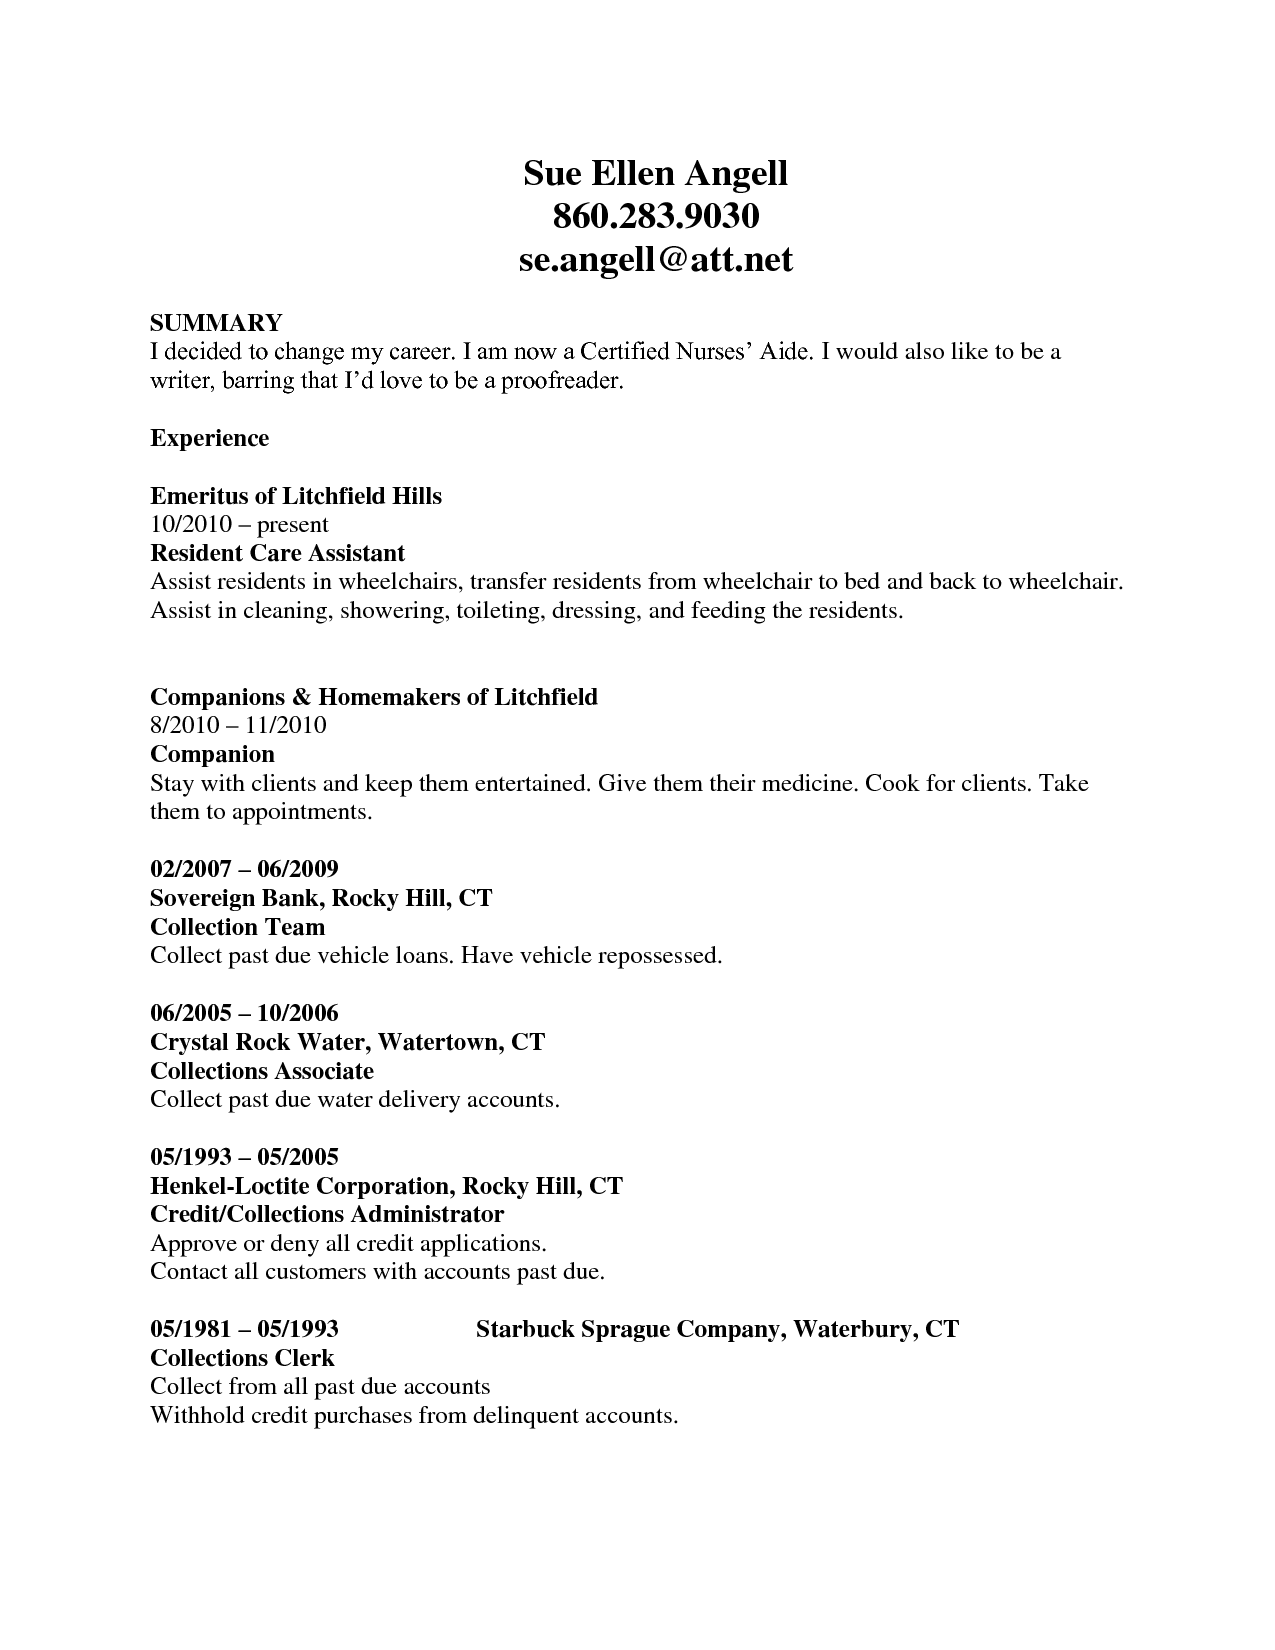 cna resume example click to zoom - Sample Resume With Objectives